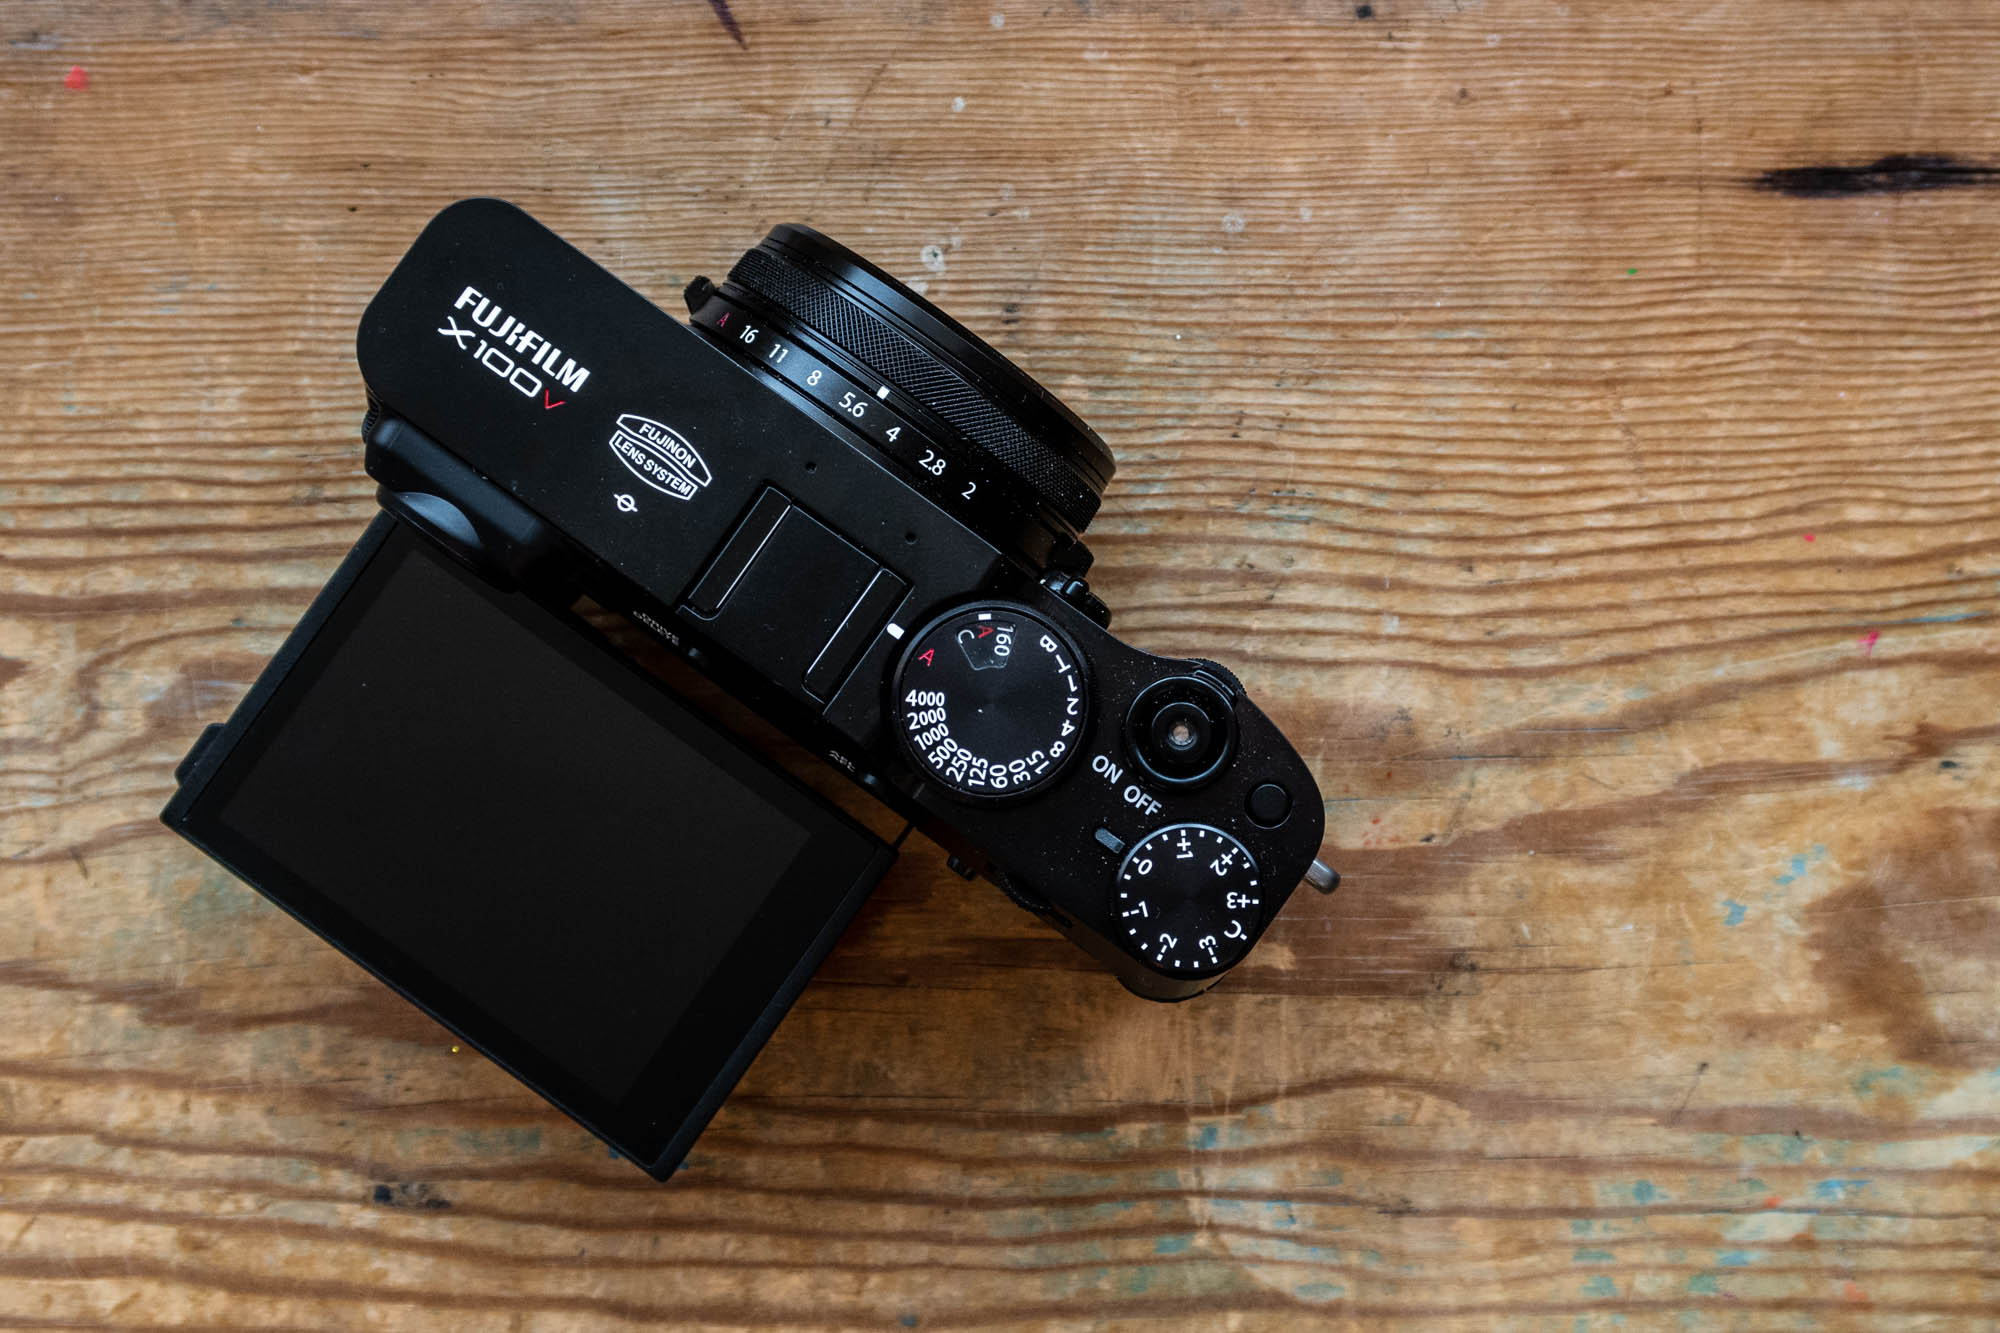 First Frames with the Fuji X100V and some thoughts on why I bought it... - 35mmc